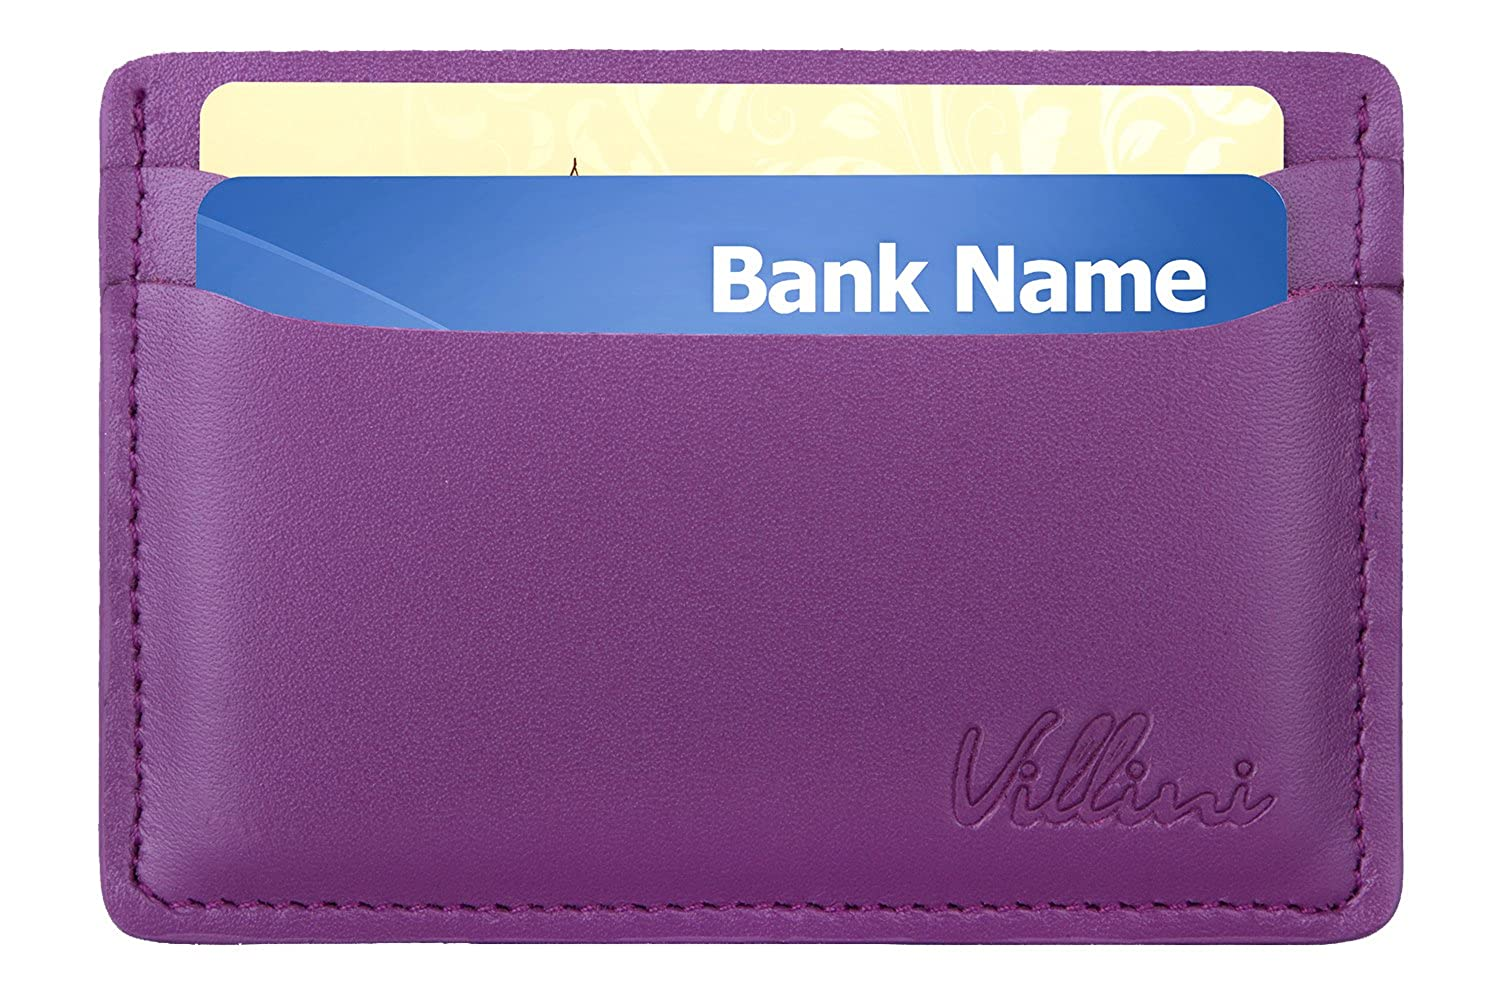 Villini Leather Slim Credit Card Holder - Thin Front Pocket Wallet - Compact Minimalist Card Case IUL-56